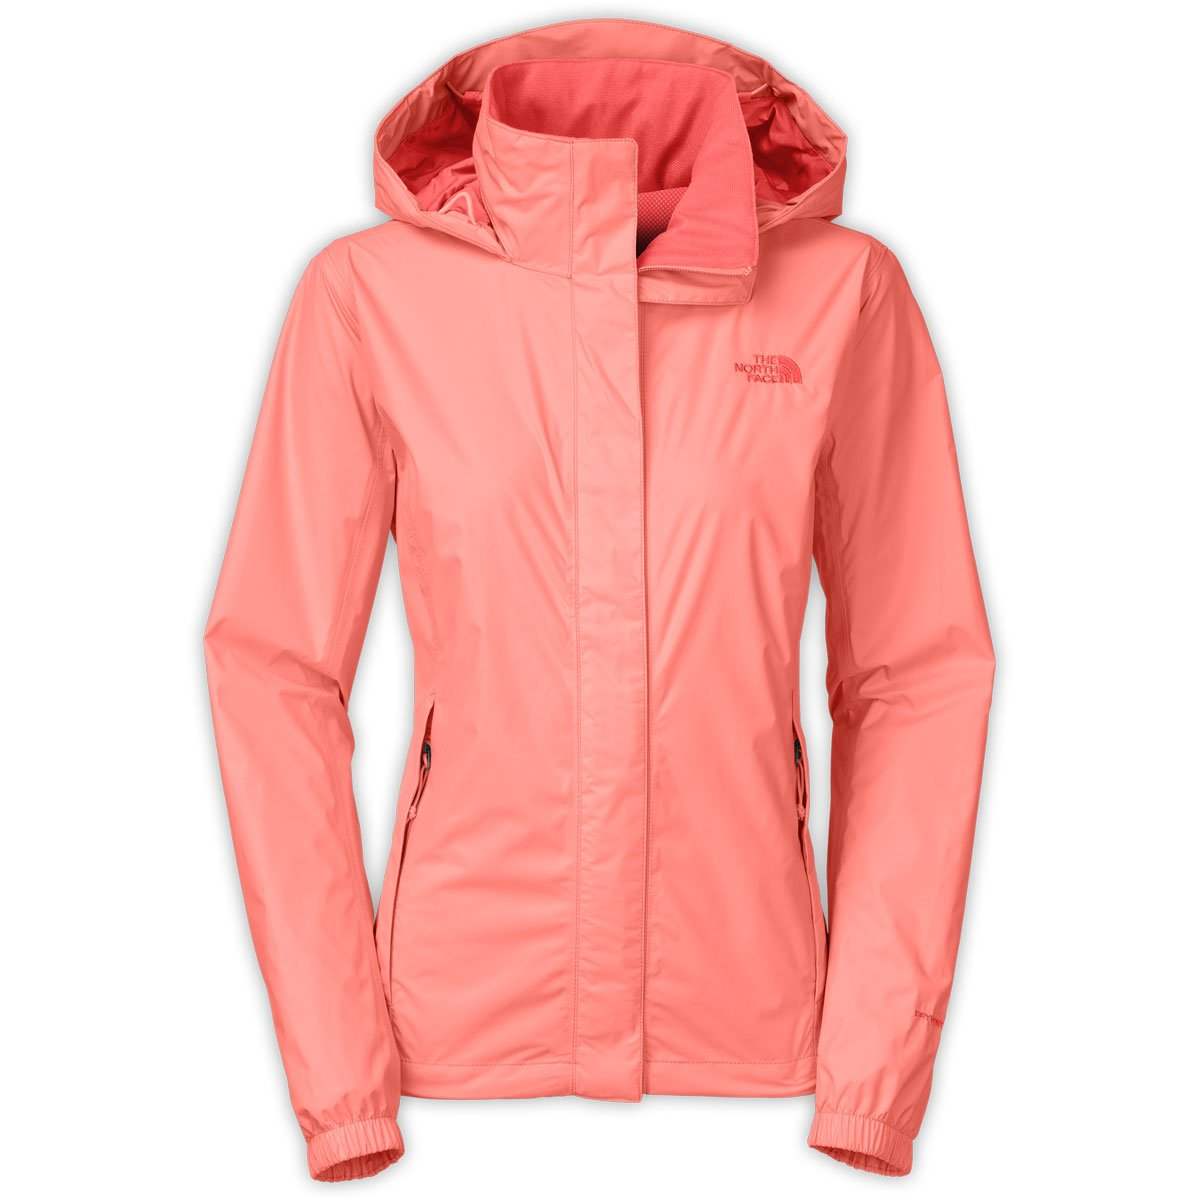 The North Face Women's Resolve Jacket Neon Peach (Large)